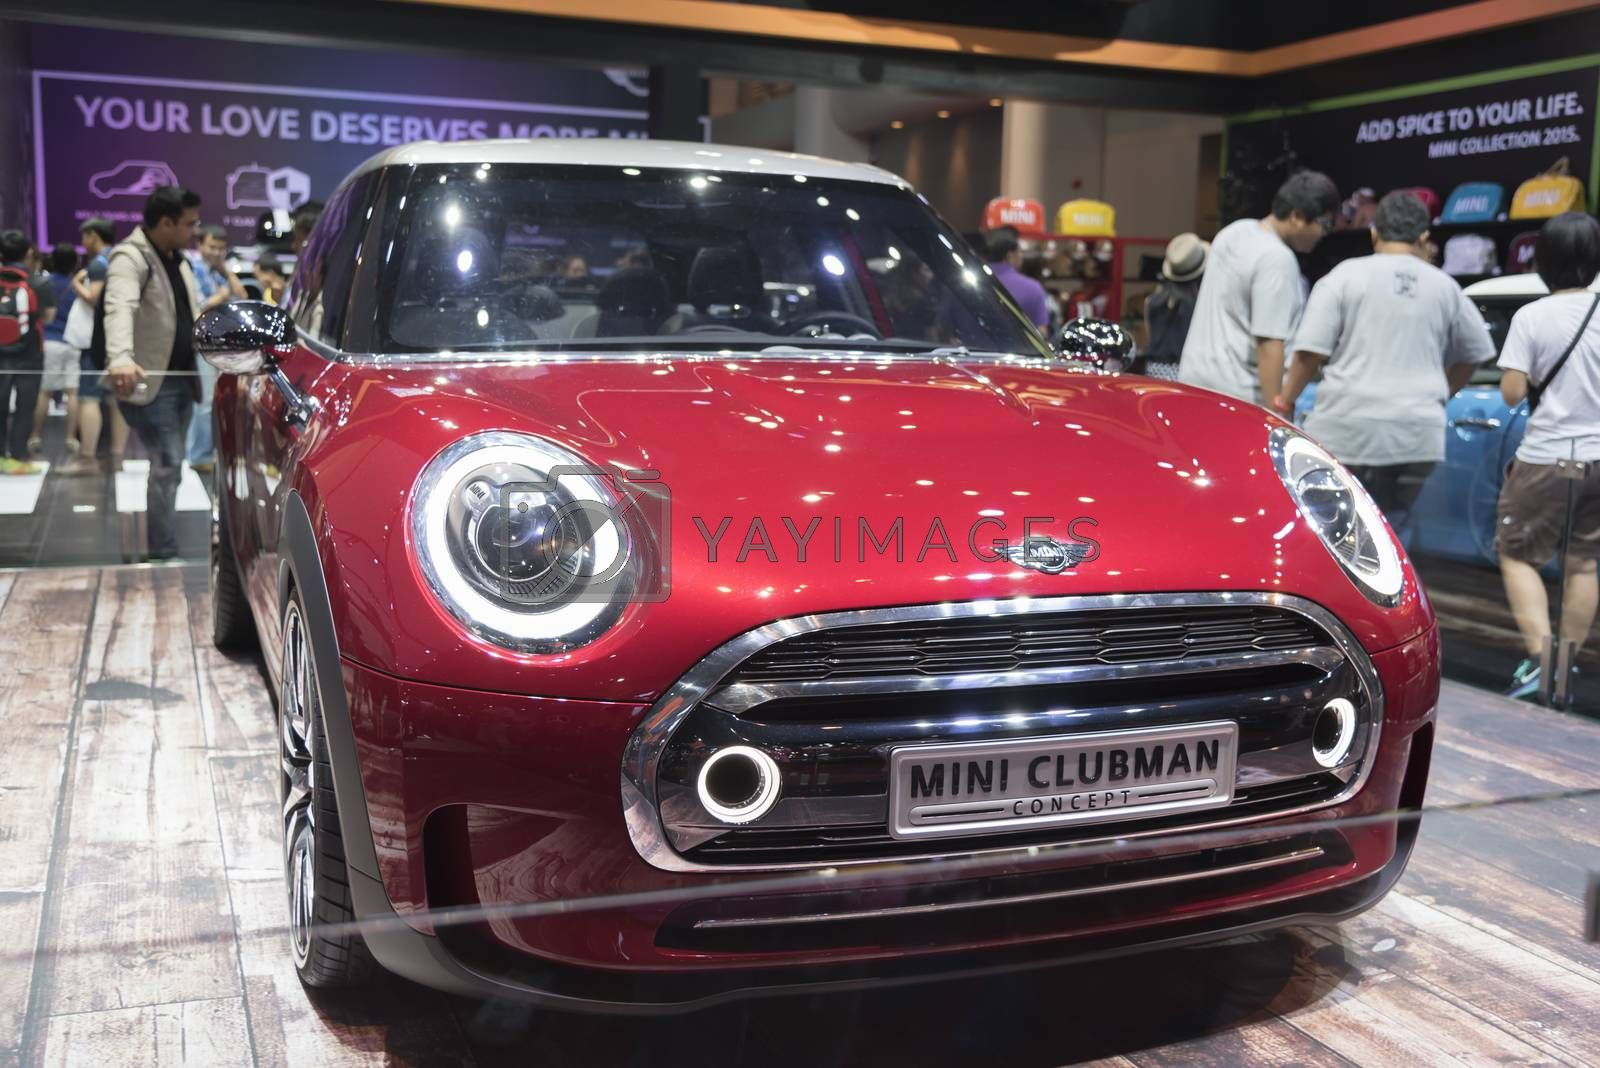 BANGKOK,THAILAND - APRIL 4 : car brand mini on April 4,2015 at the 36th Bangkok international motor show in Thailand.Red color of mini clubman car